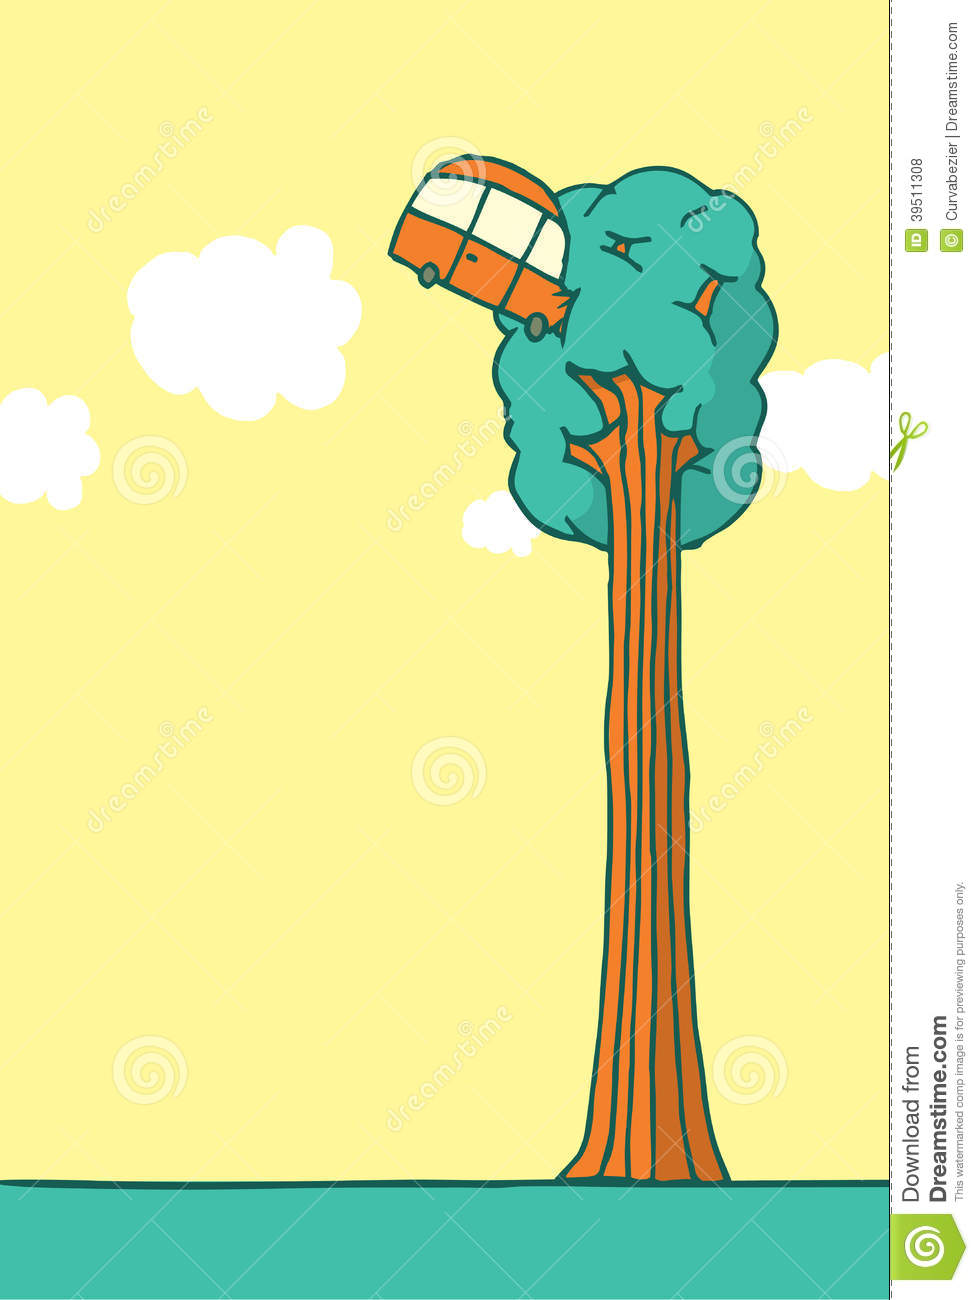 Reckless Driver Crashes Into Tree Stock Vector - Image ...